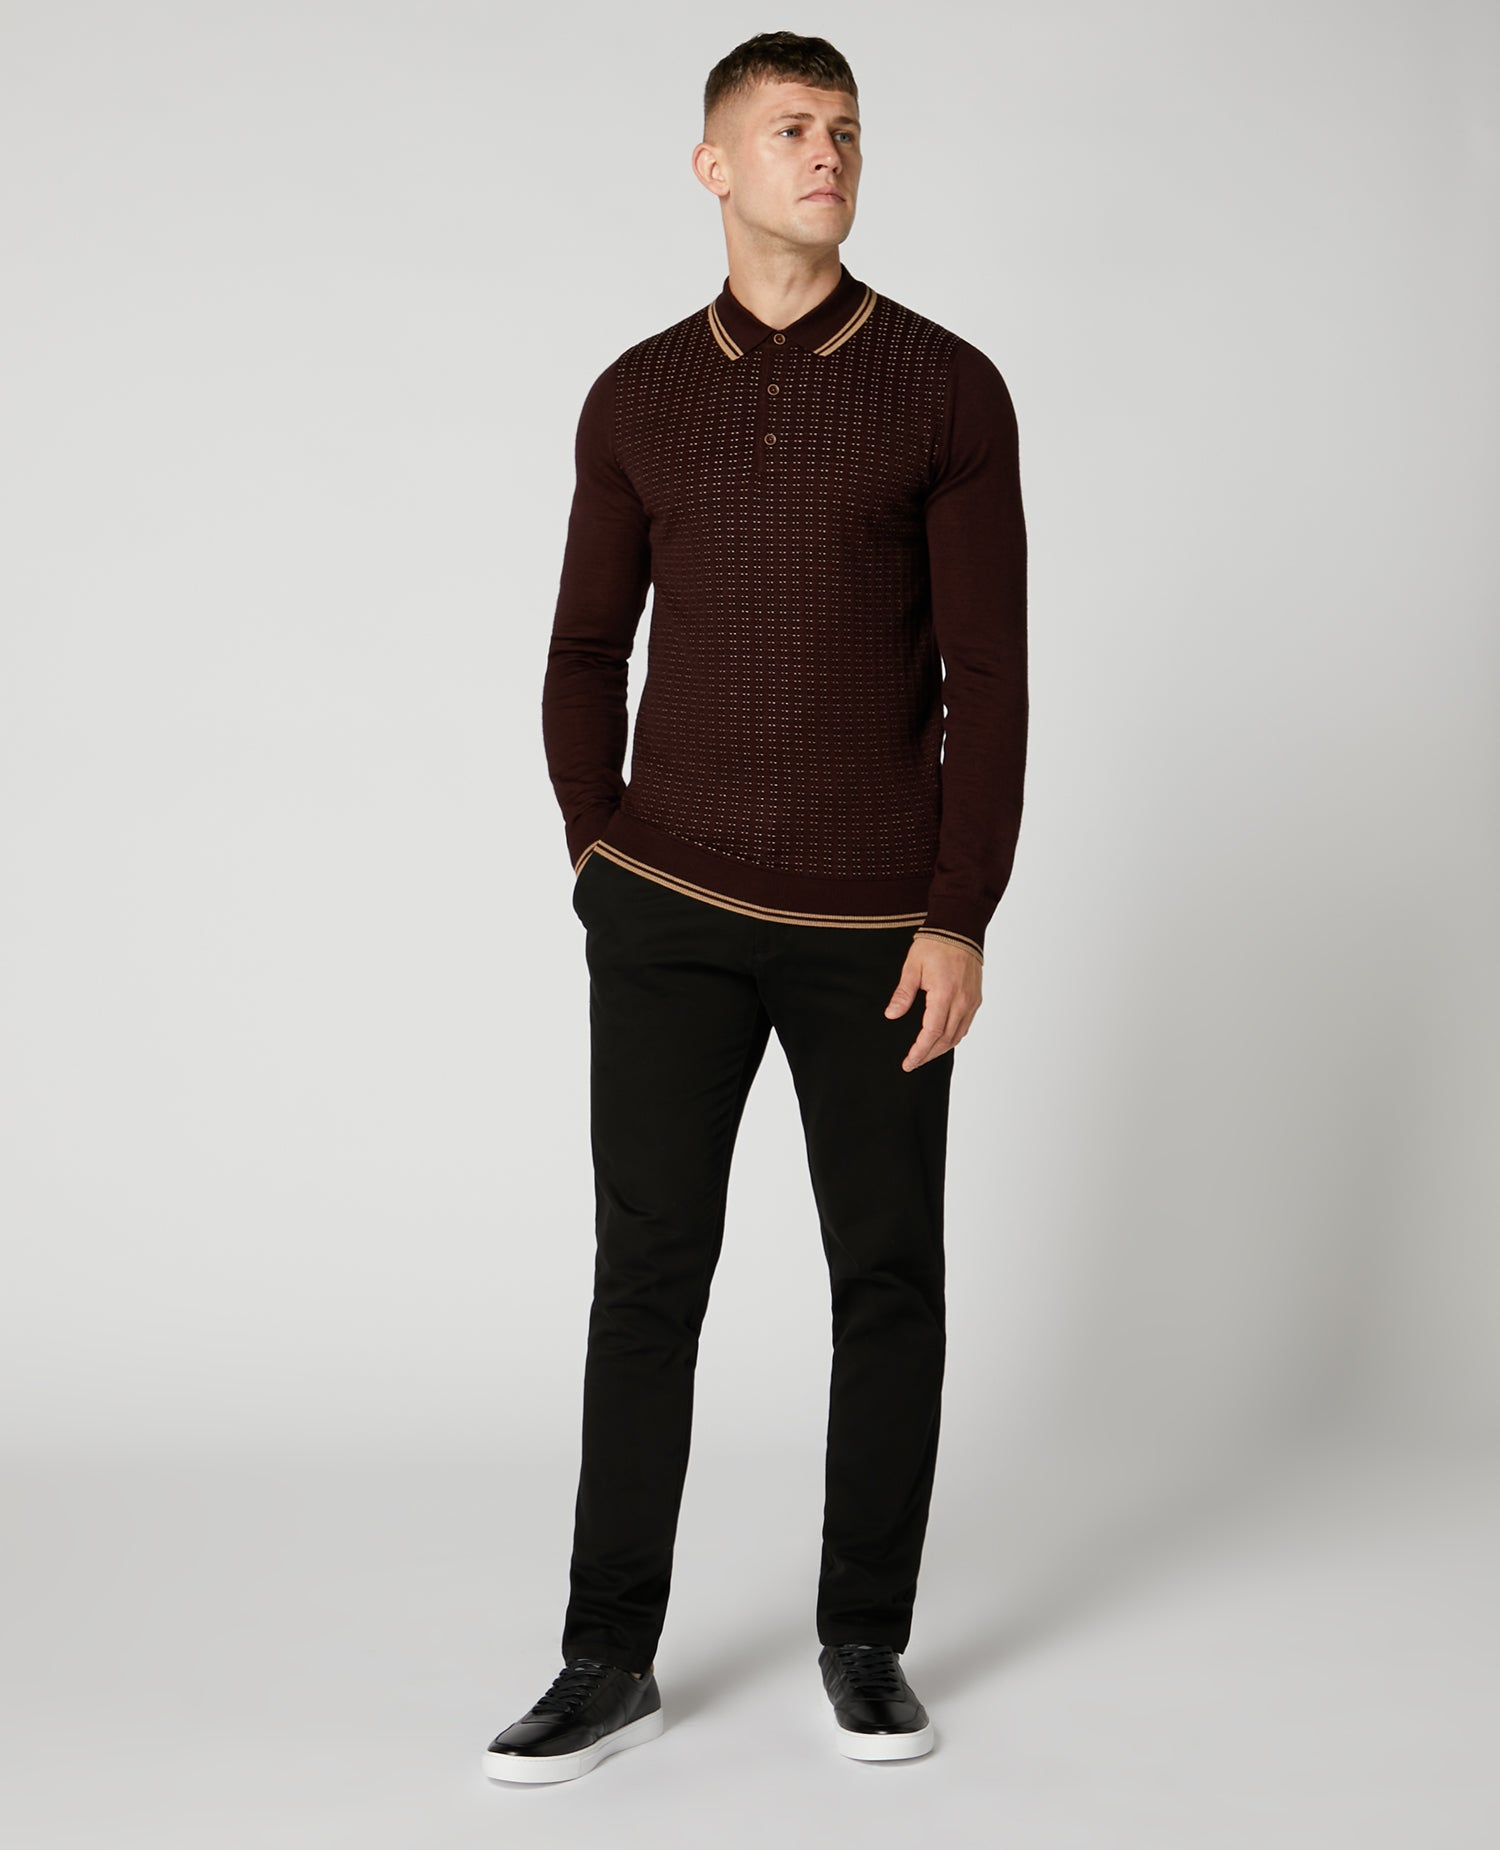 Burgundy Dotted Long-Sleeved Knitted Polo Shirt